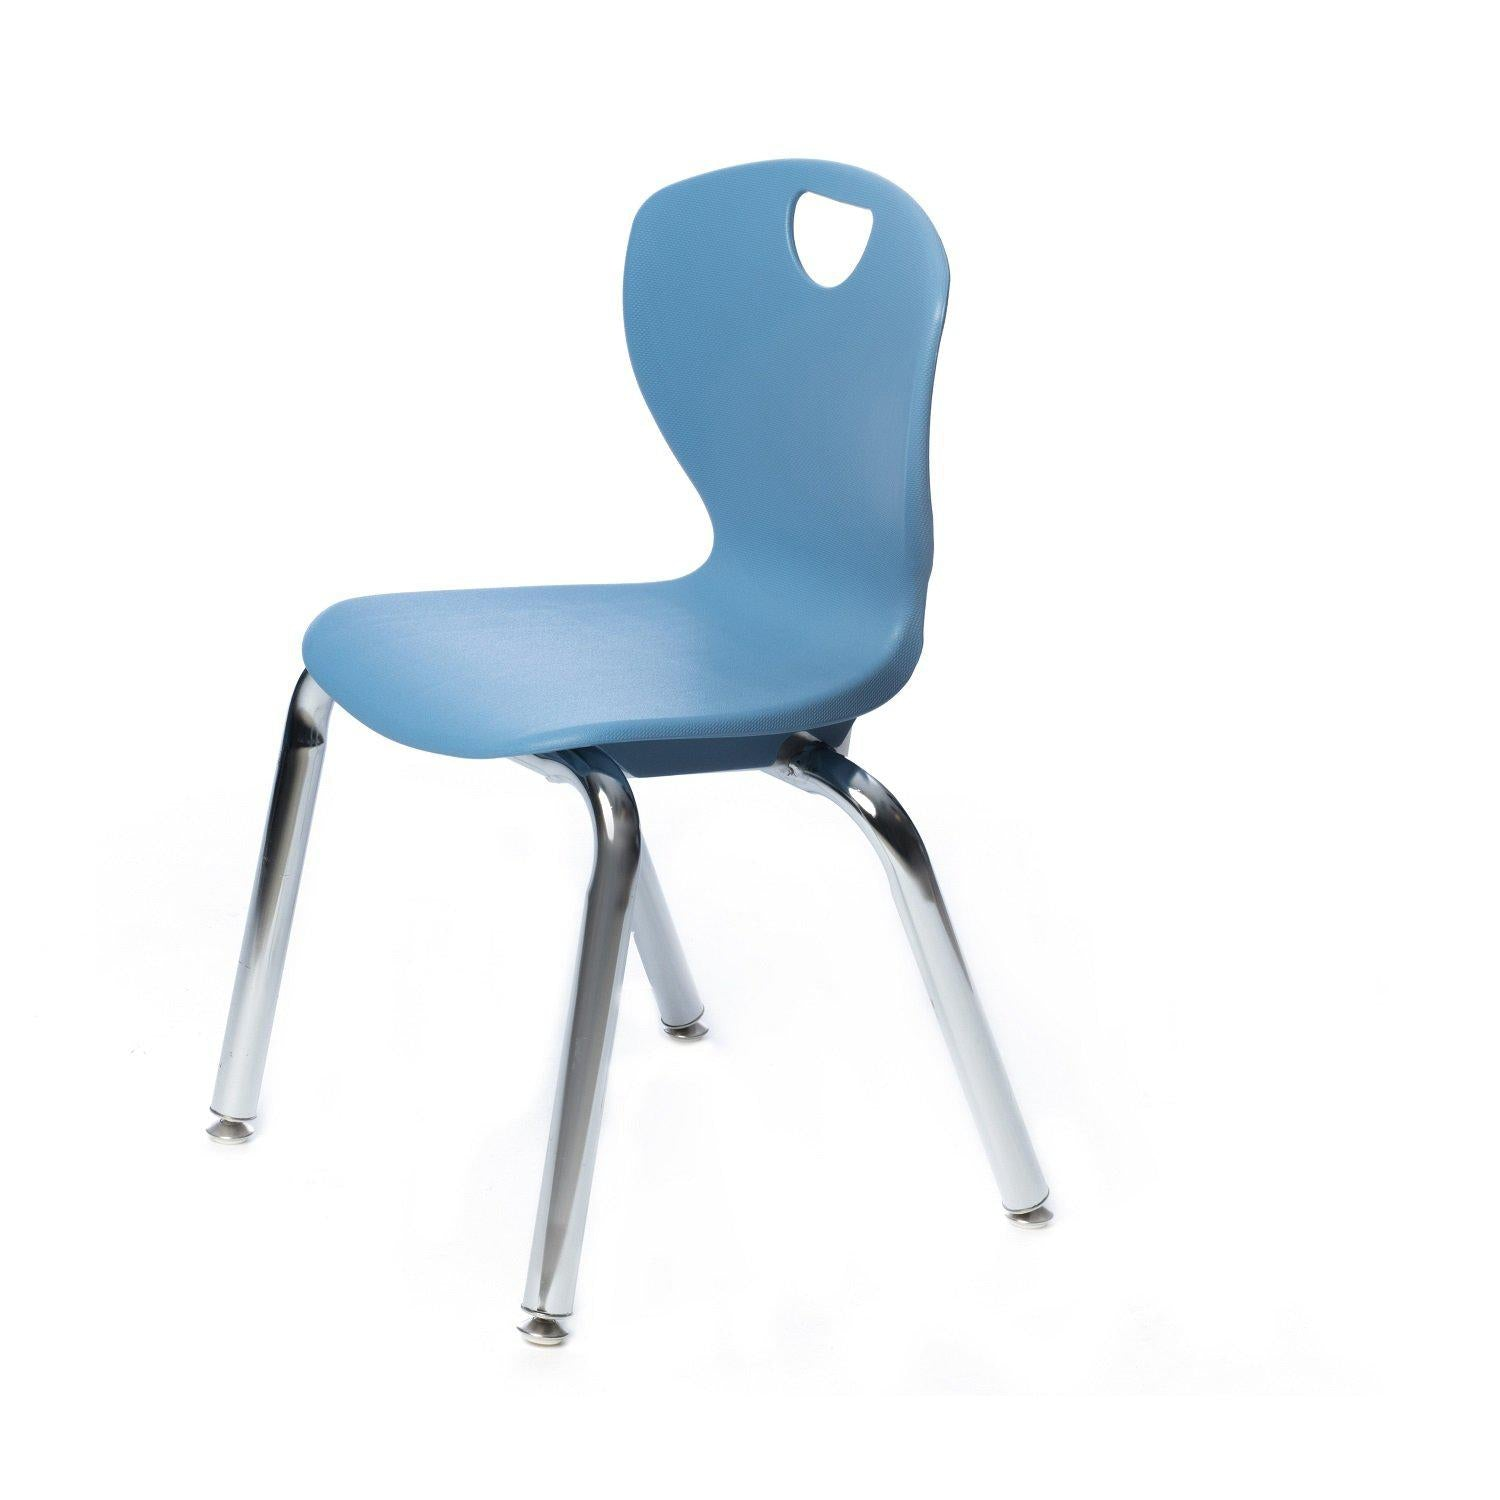 Wholesale School Chairs For Sale Buy School Chairs In Bulk From Our Warehouse Nextgen Furniture Inc